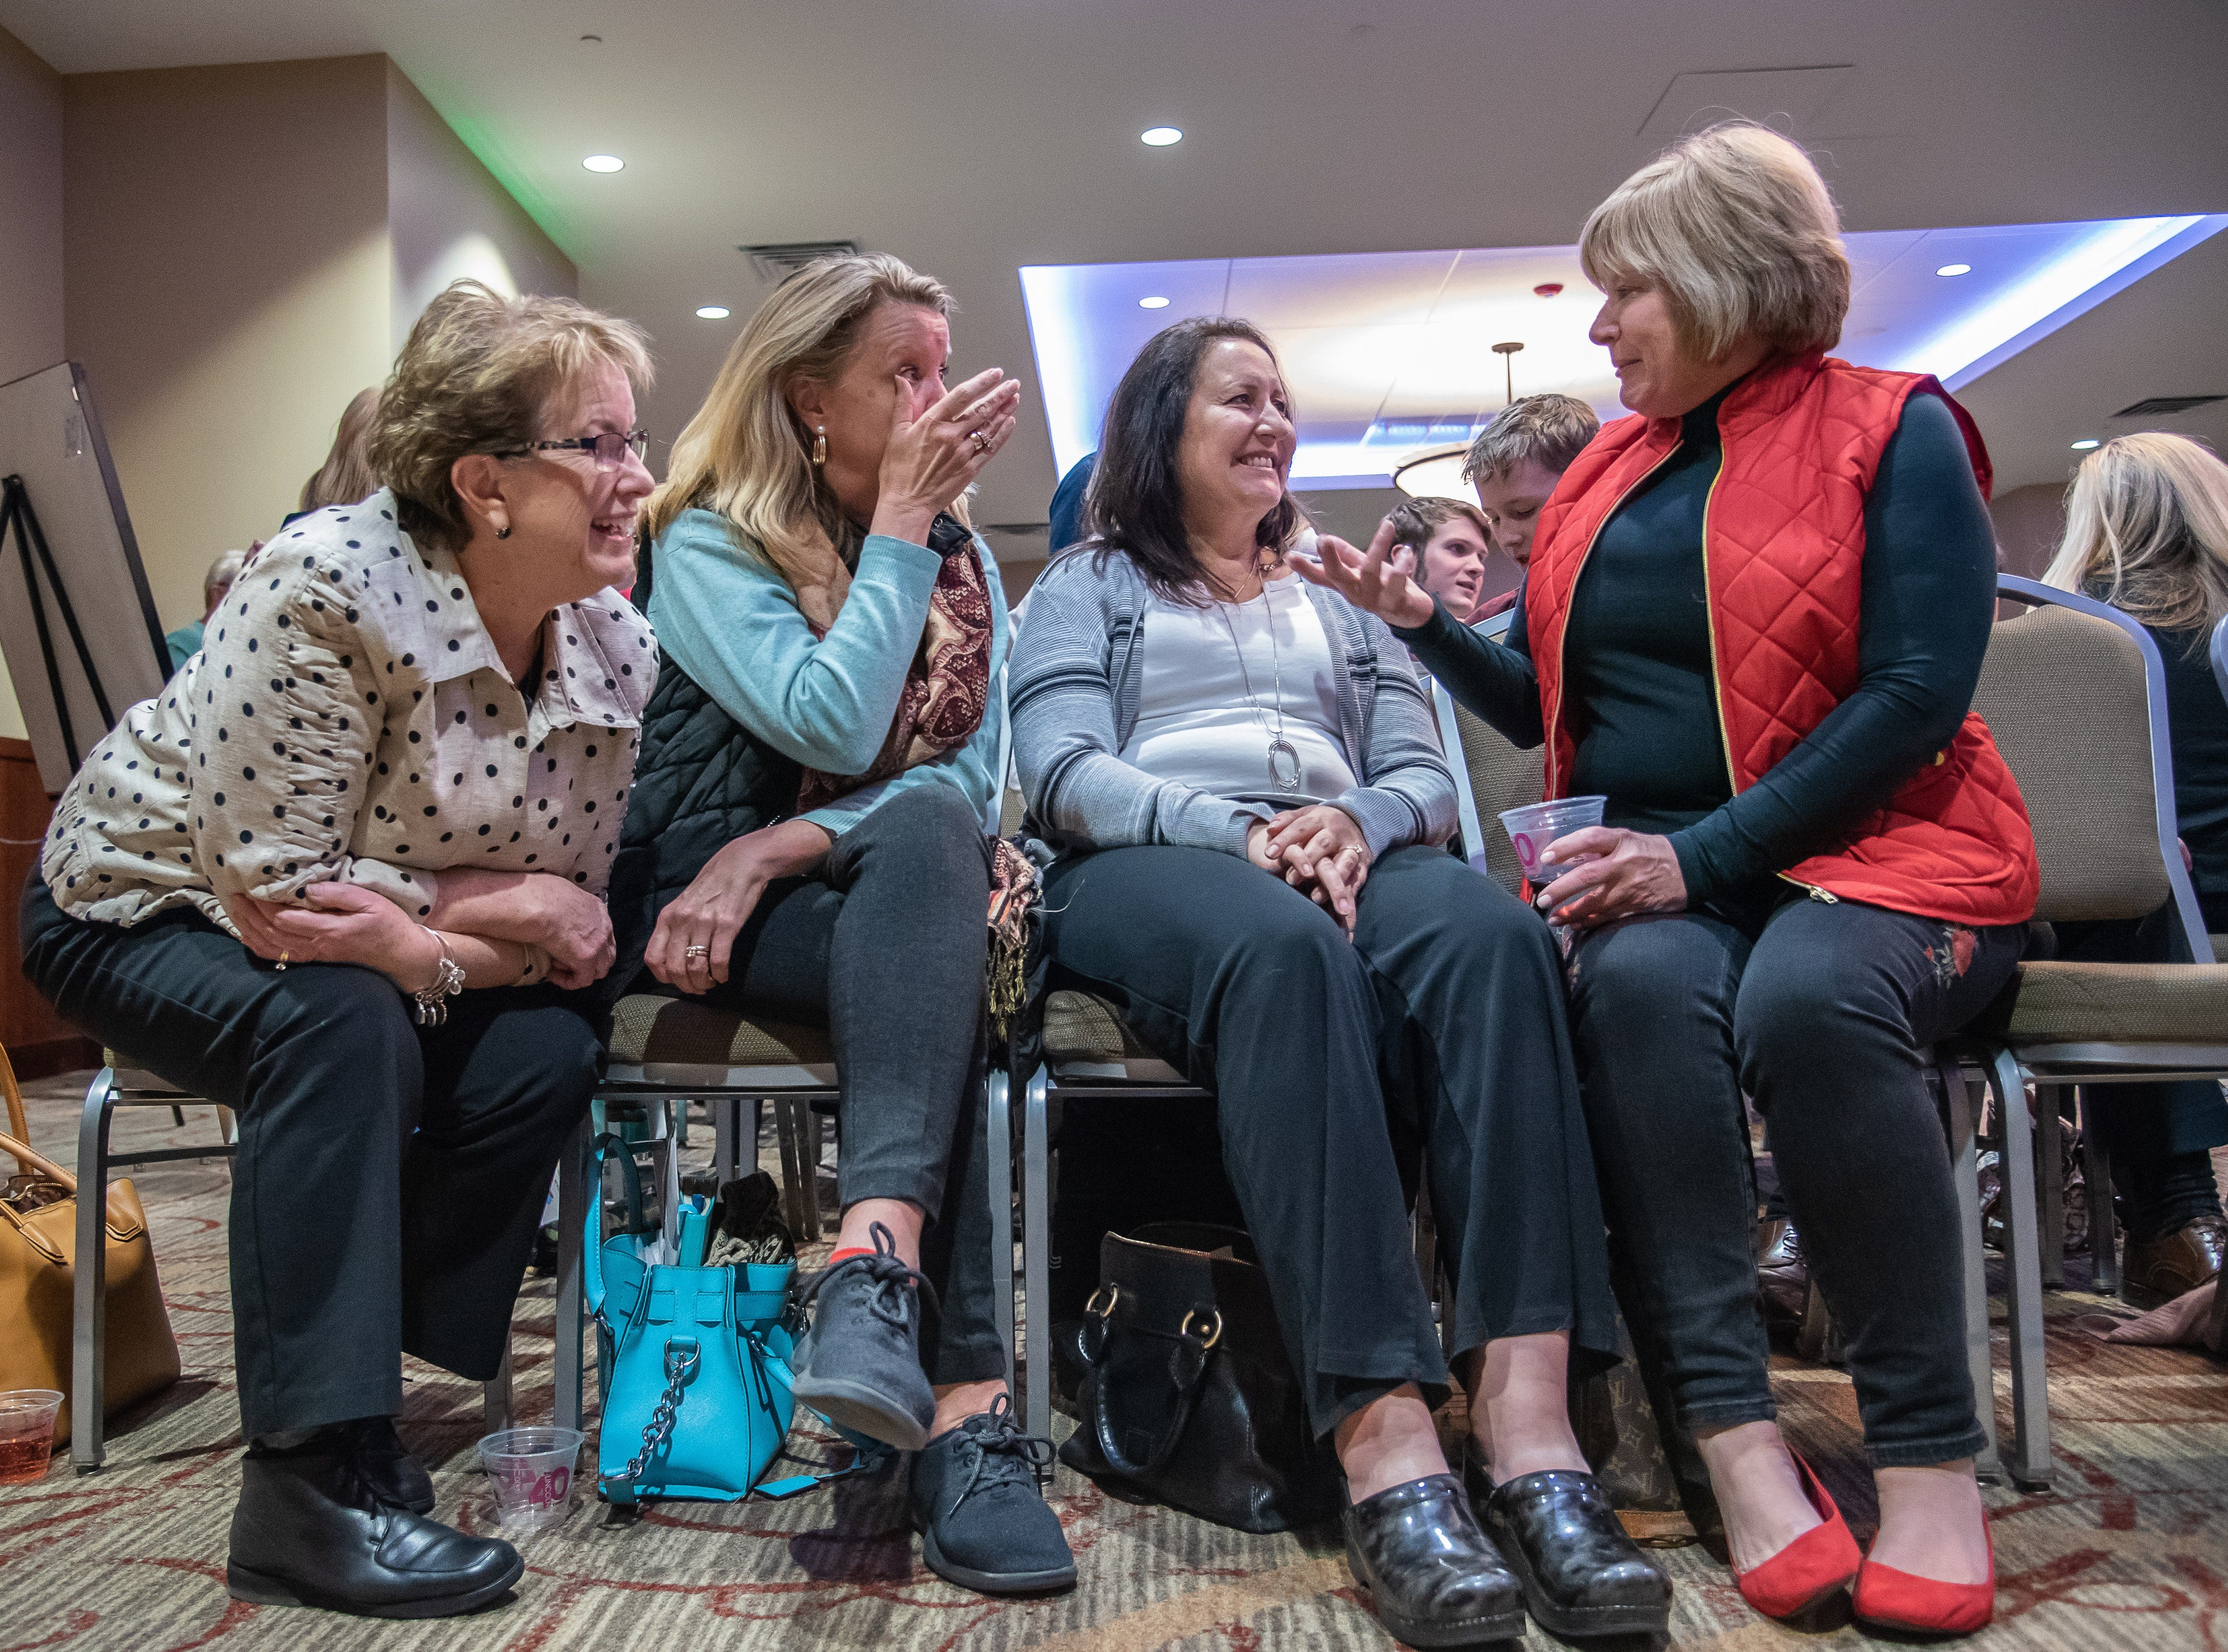 Audience members Peggy Wagner, Julie Ulstrup, Deanna Krausse and Mary Vivo talk during the intermission of the Coloradoan Storytellers Project at Lincoln Center on Tuesday, December 11, 2018.